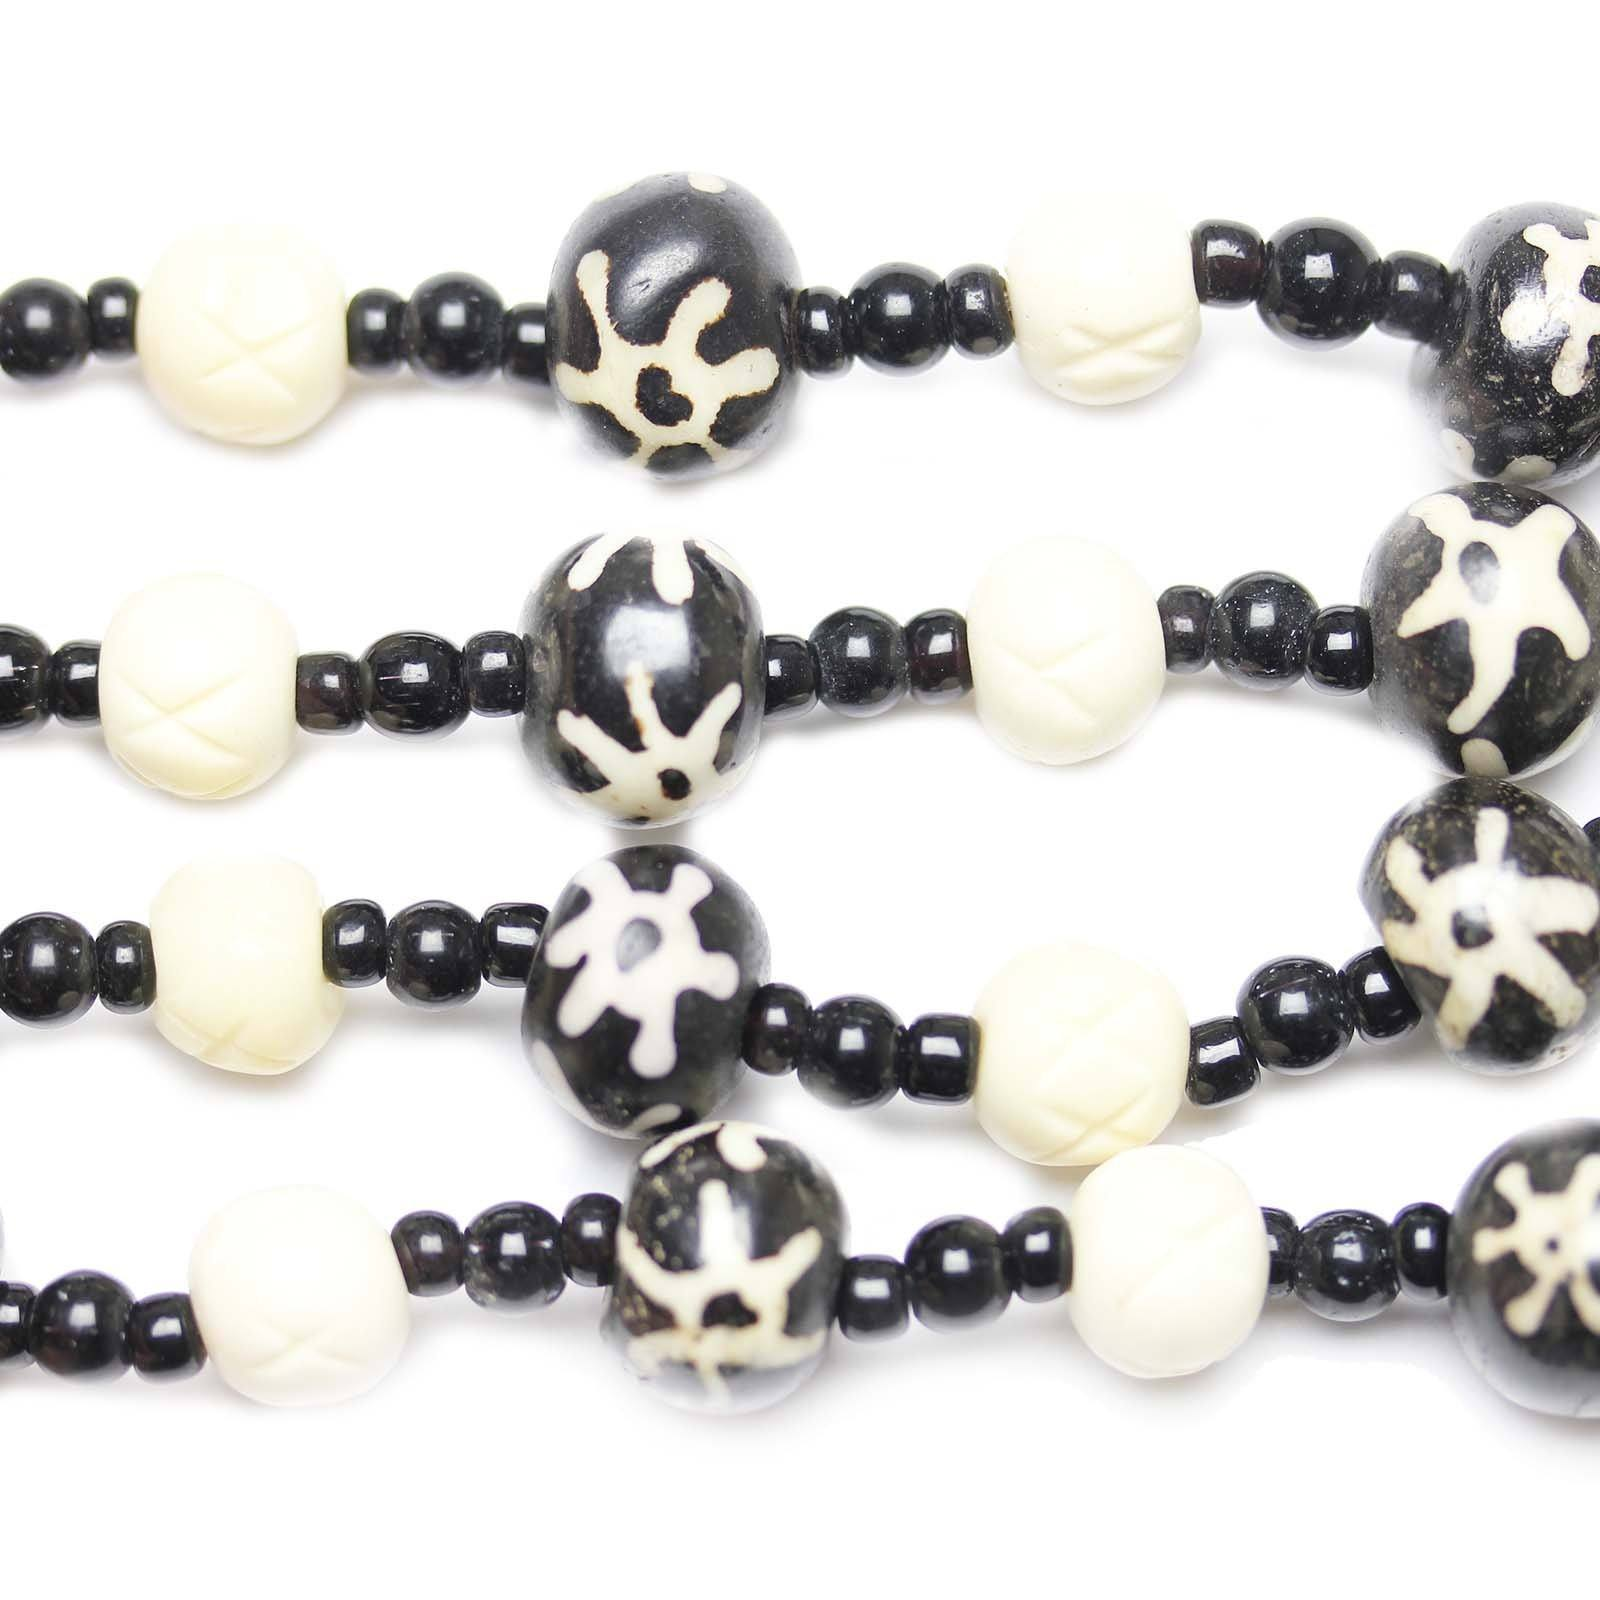 Dyed Carved Bone Beads Rondell Mixed Size 8x10mm 10x14mm 3 99